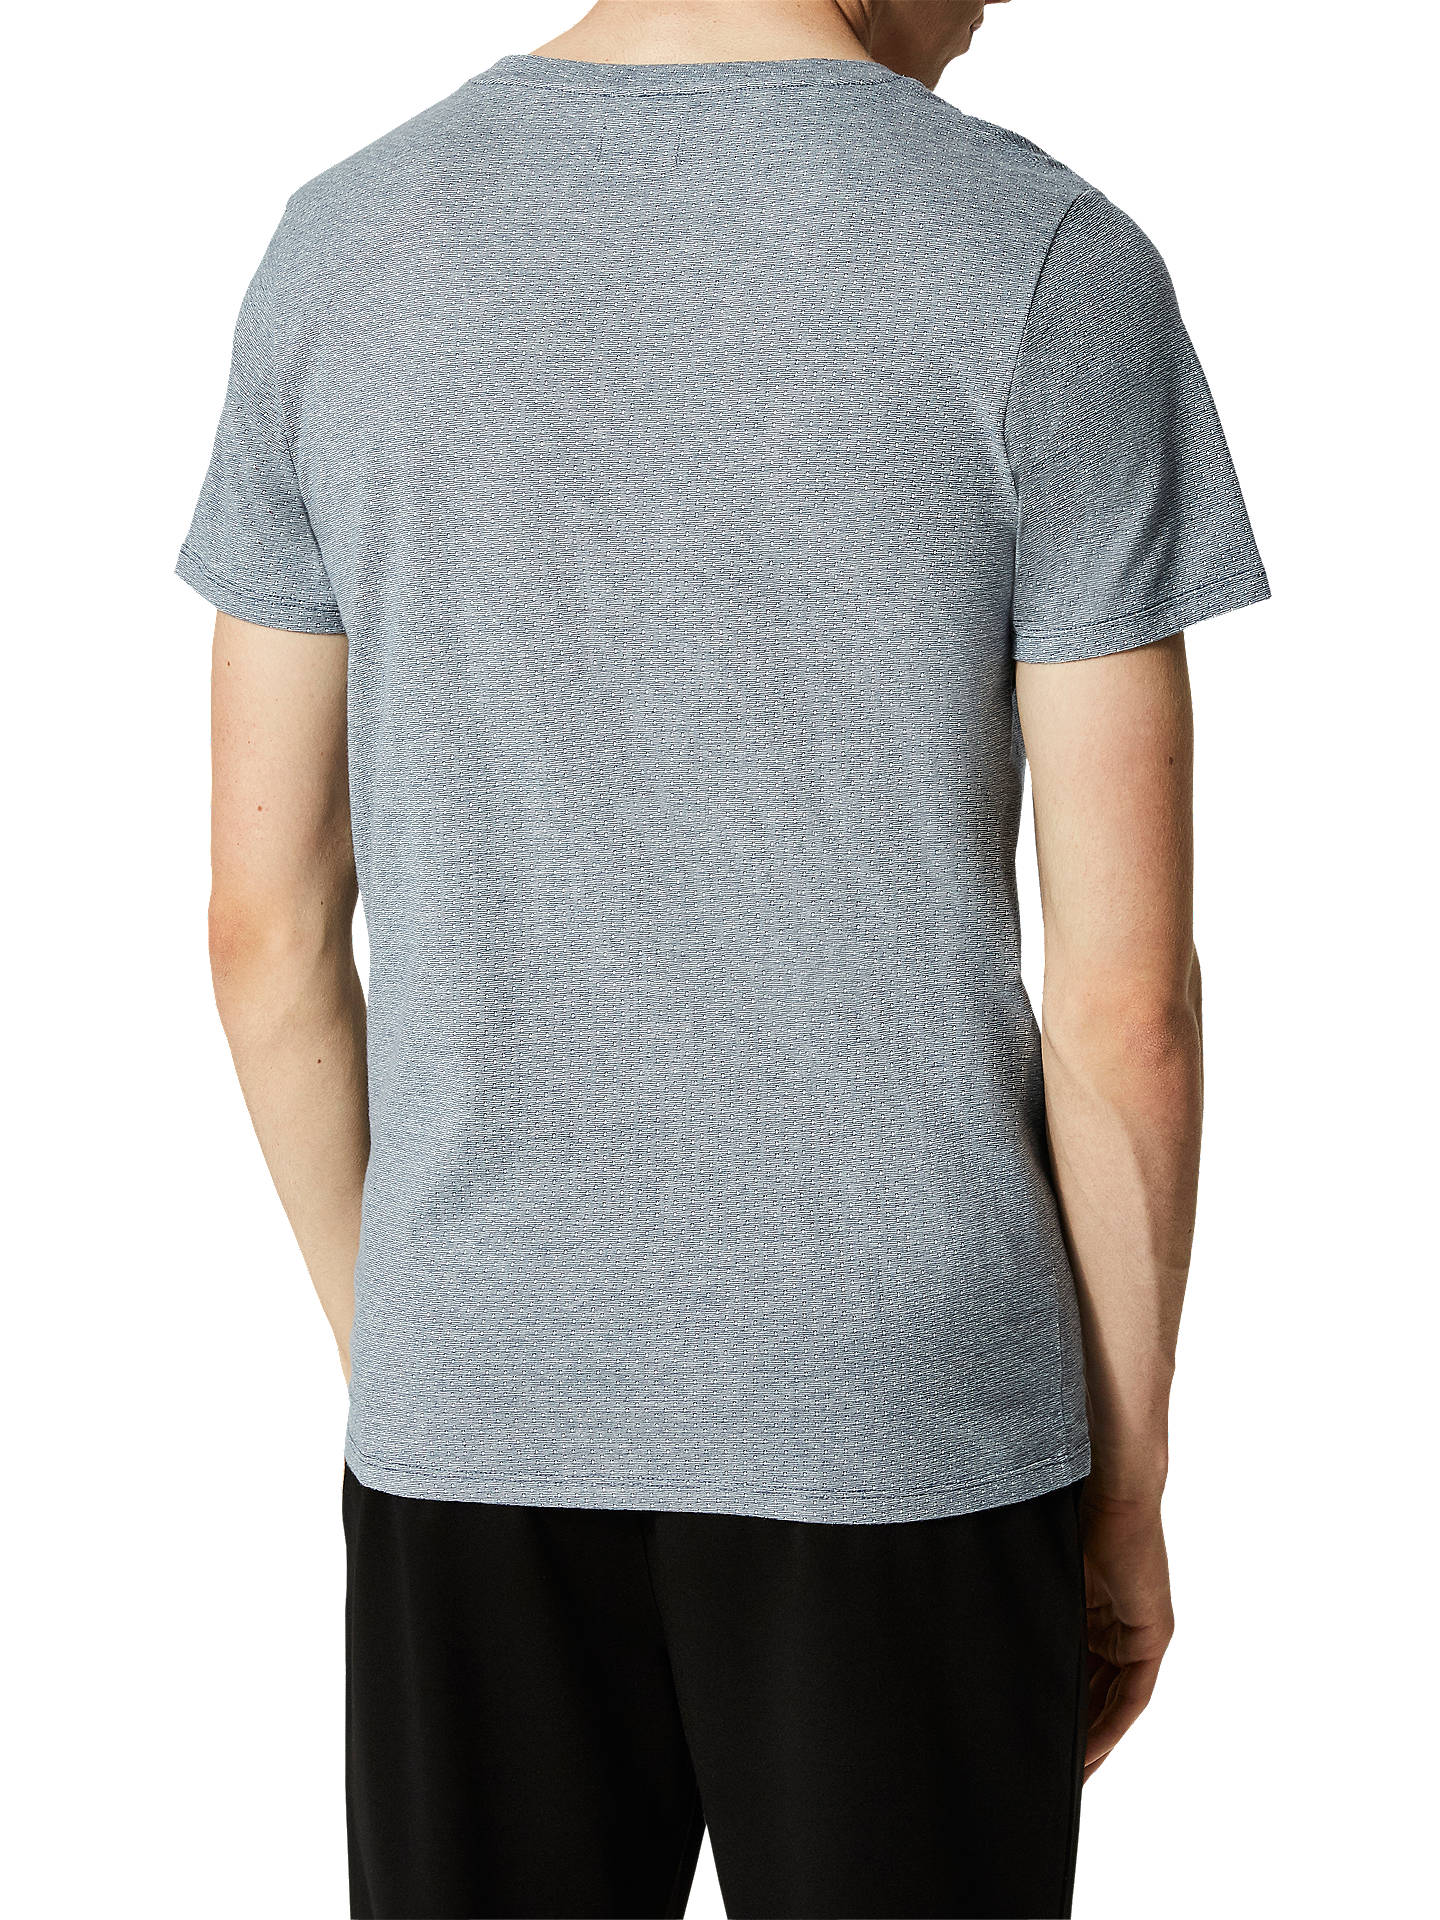 BuySelected Homme Pete Dot T-Shirt, Ensign Blue, S Online at johnlewis.com